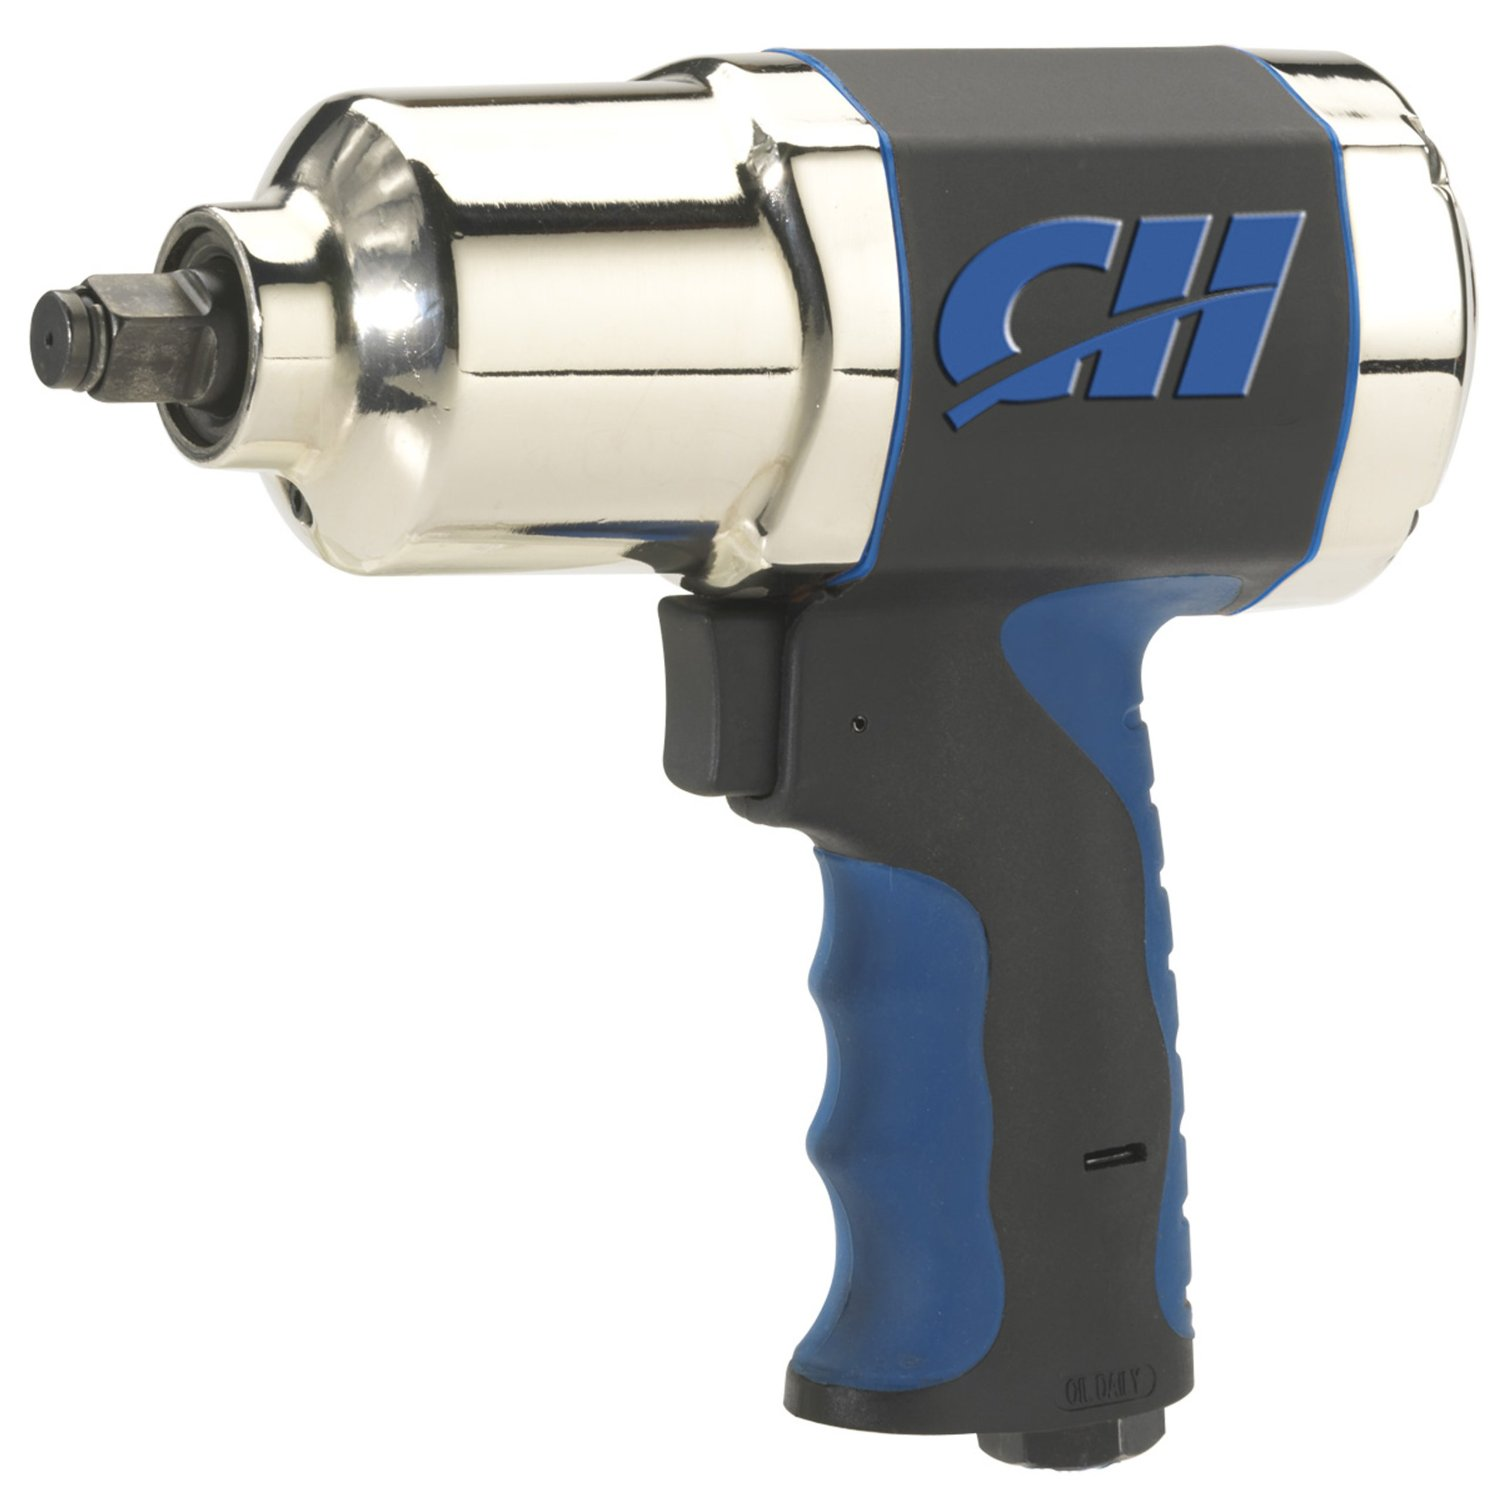 CAMPBELL OPERATING INSTRUCTIONS HAUSFELD IMPACT WRENCH